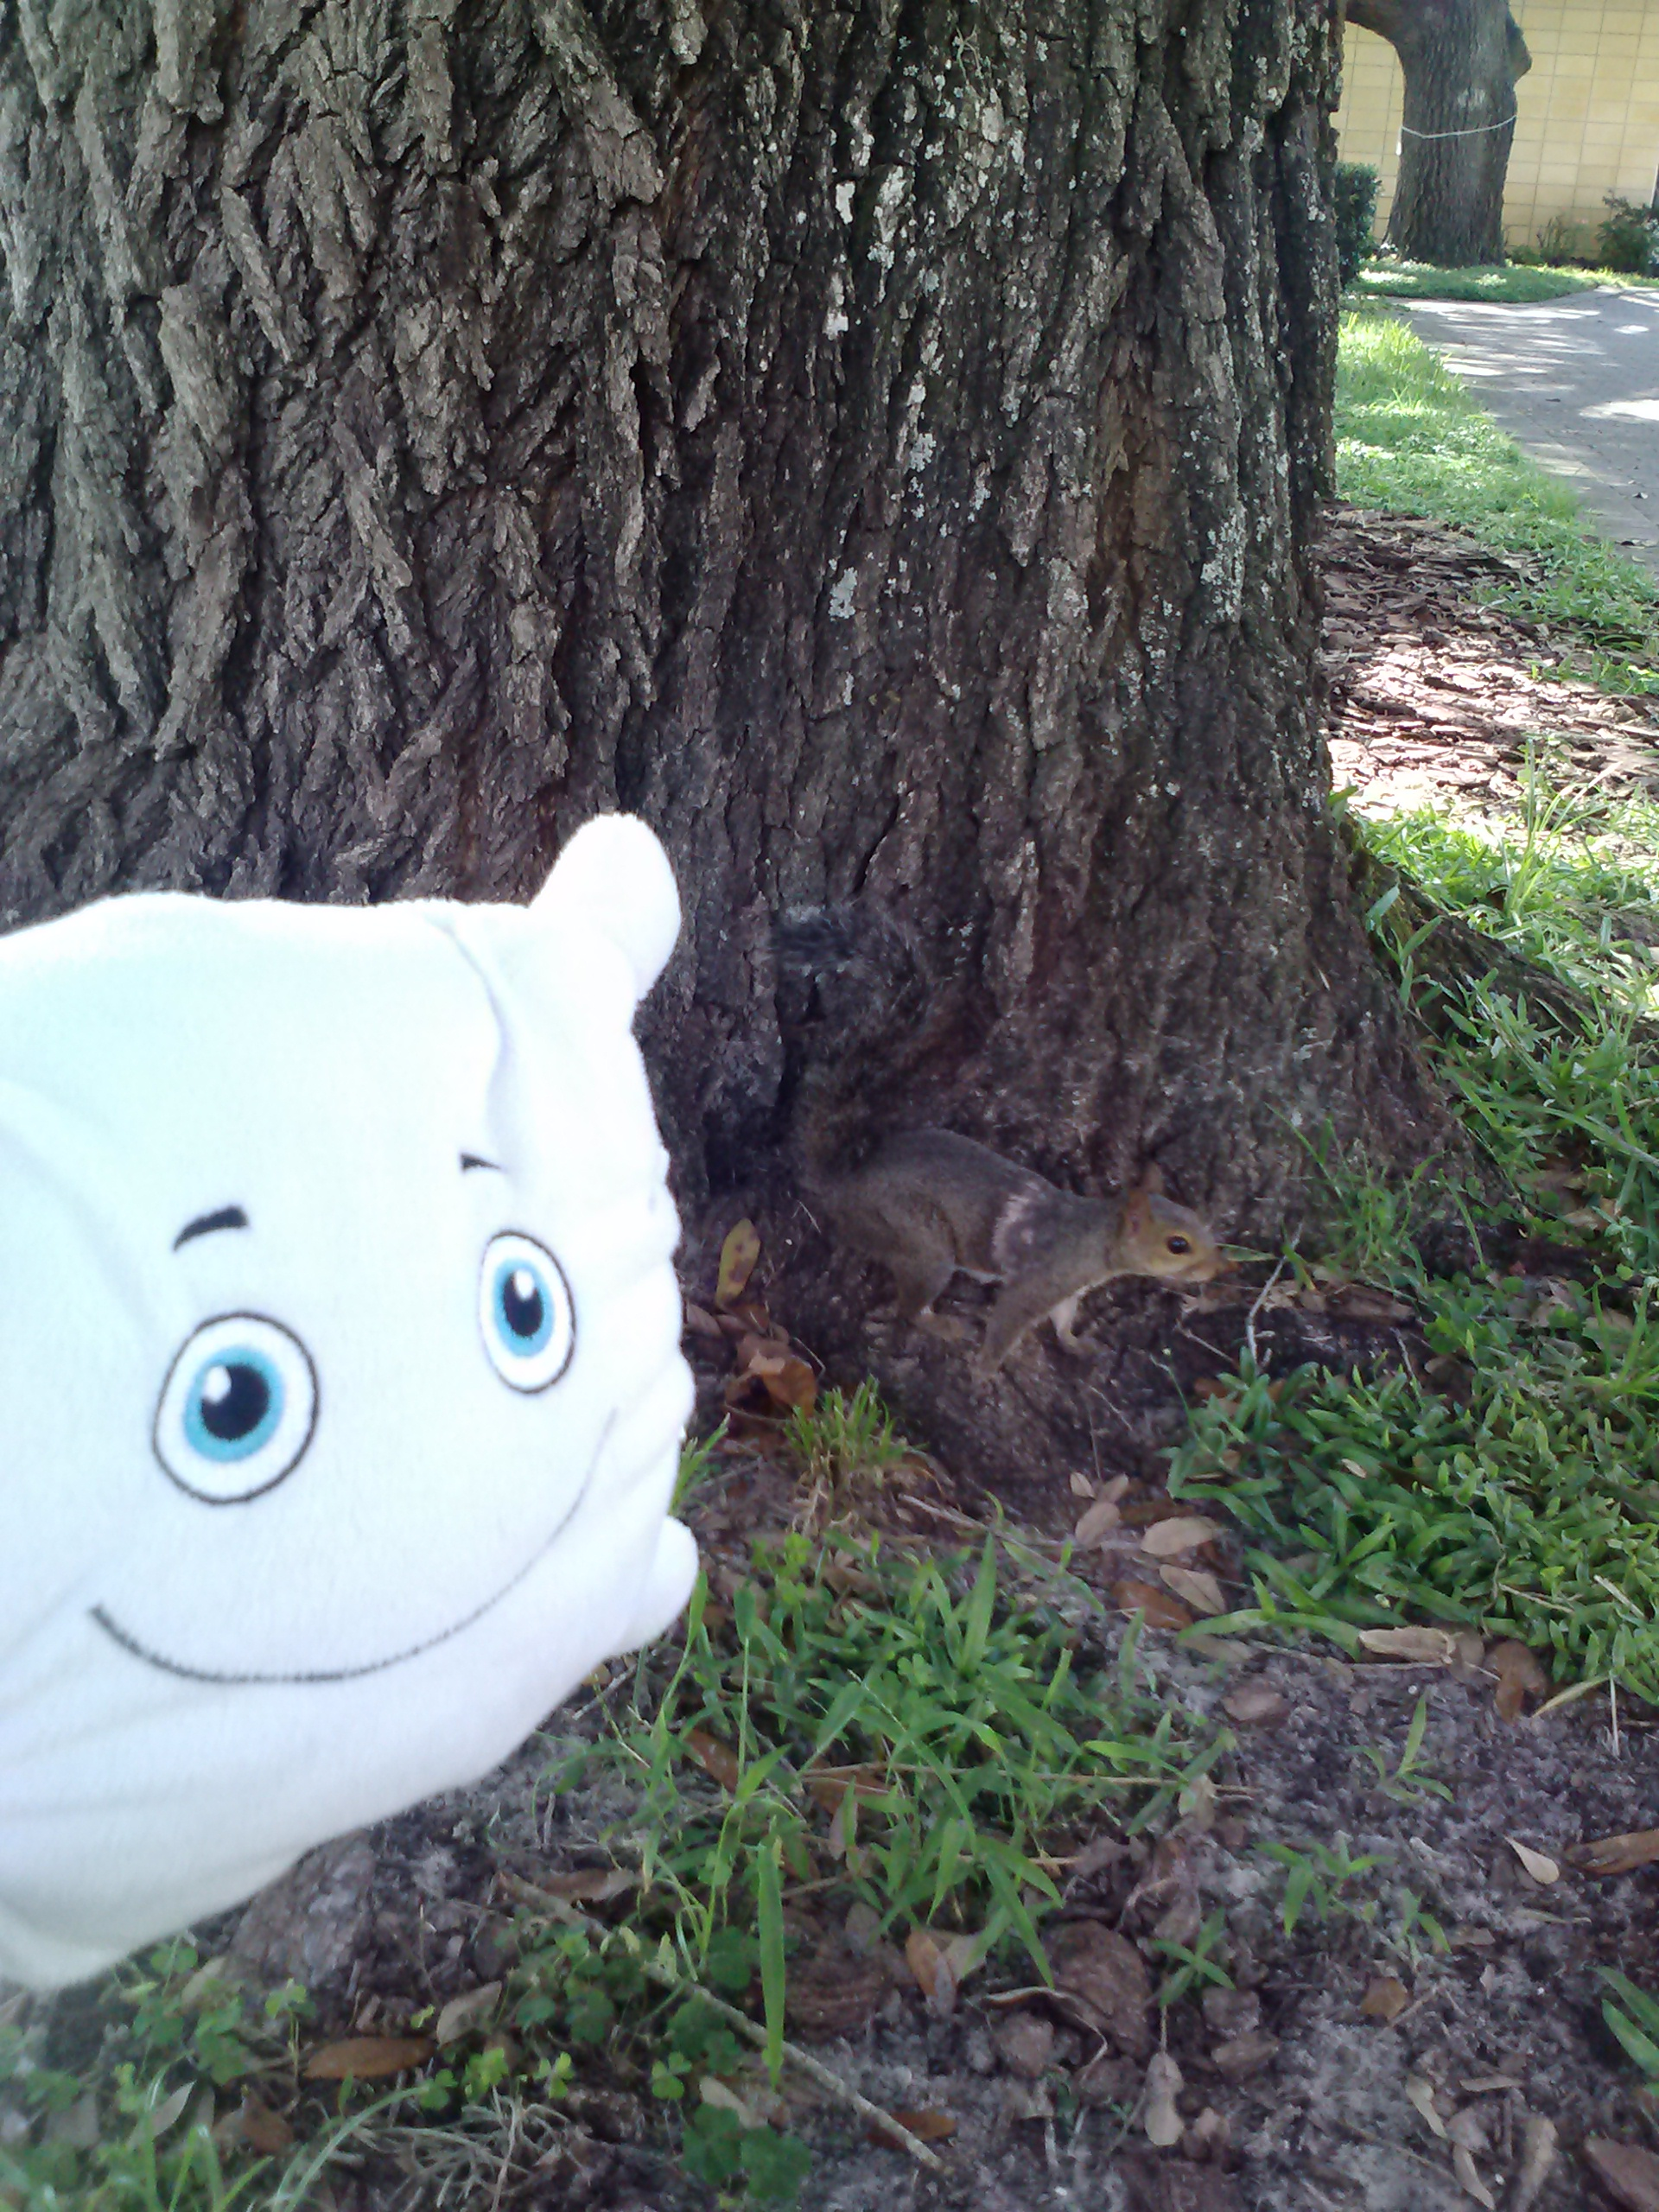 McStuffy feeds the squirrels! They love peanuts.